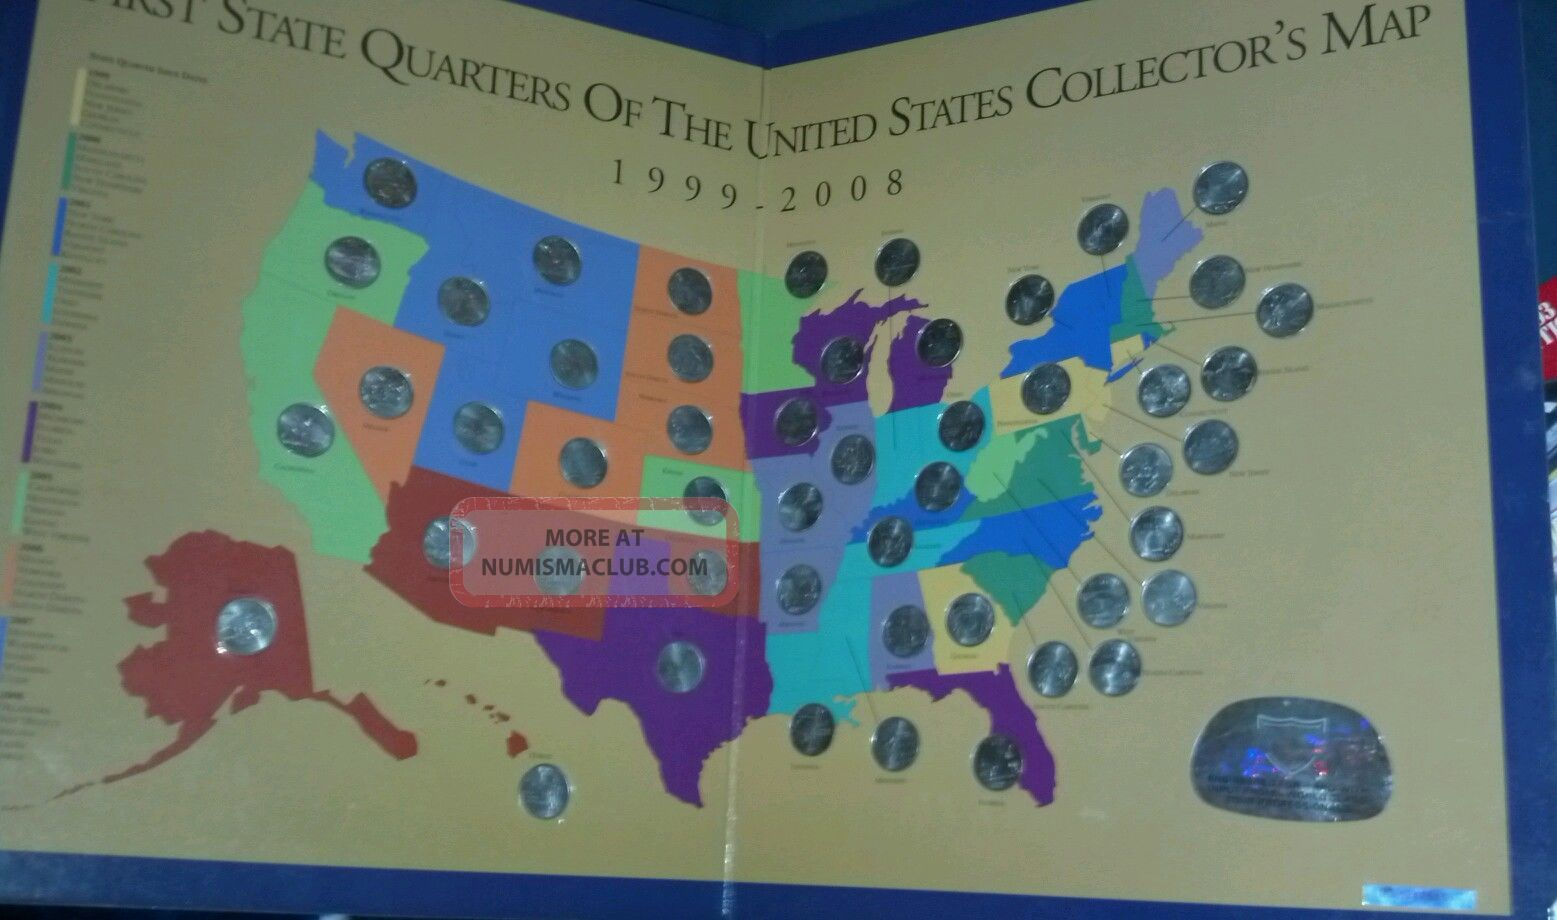 First State Quarters If The United States Collectors Map 1999 2008